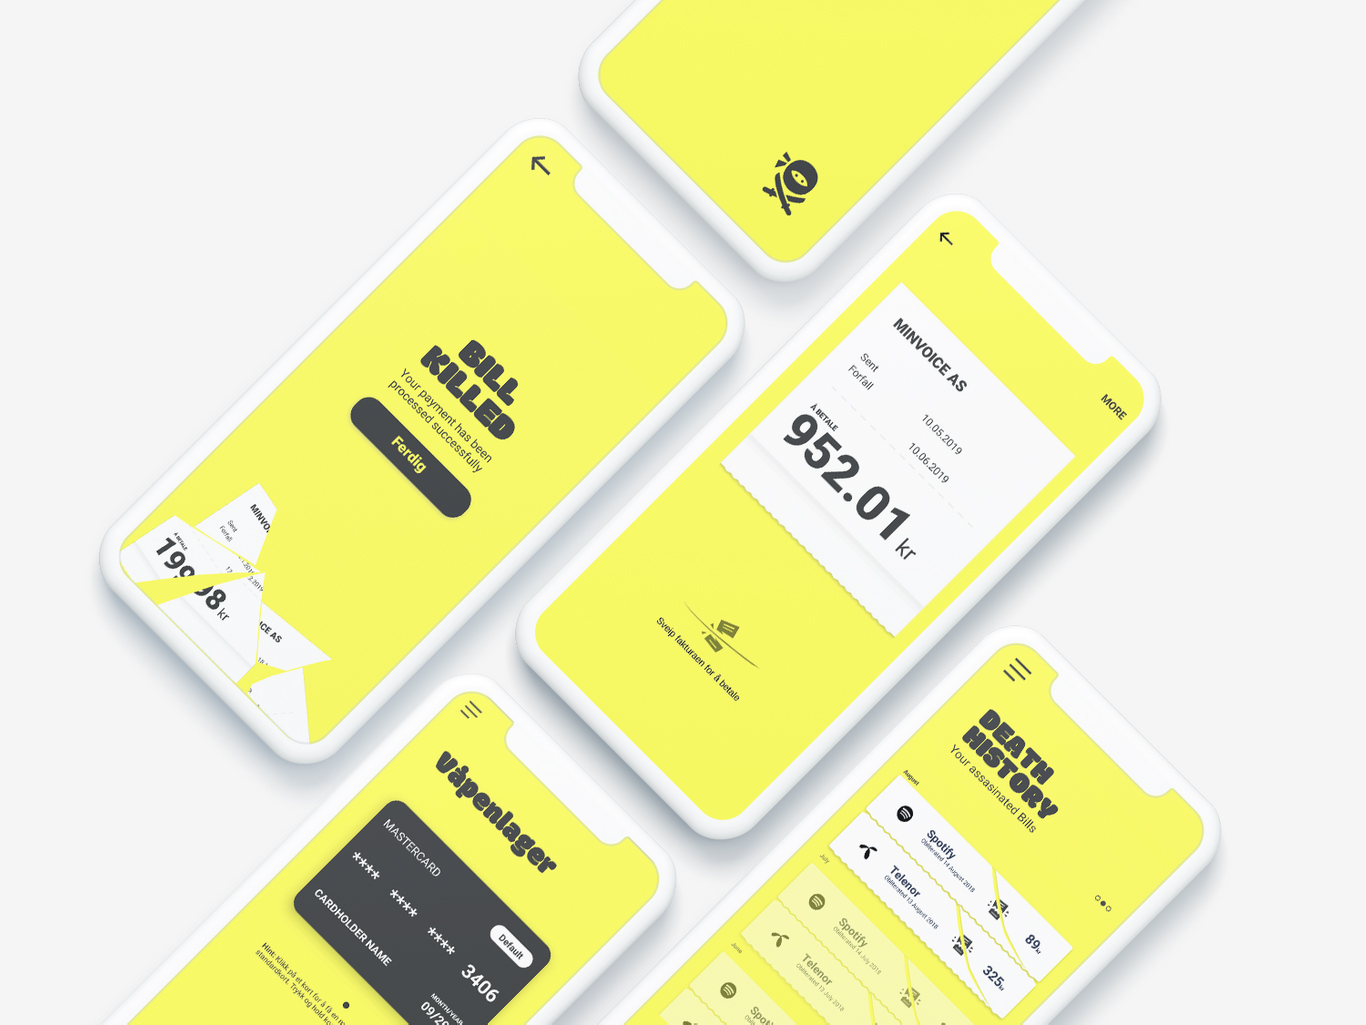 UI and UX design for Bill Kill